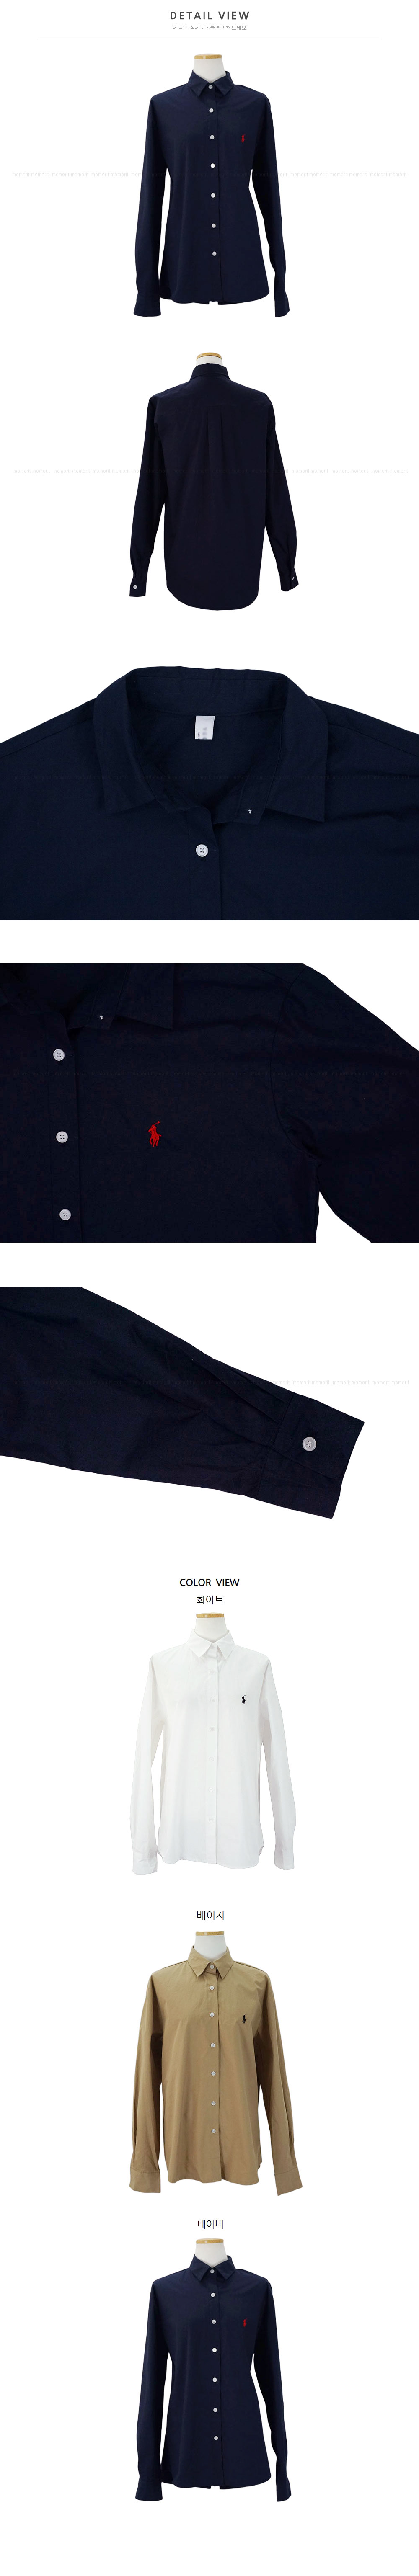 Ralph Native Southern 3color